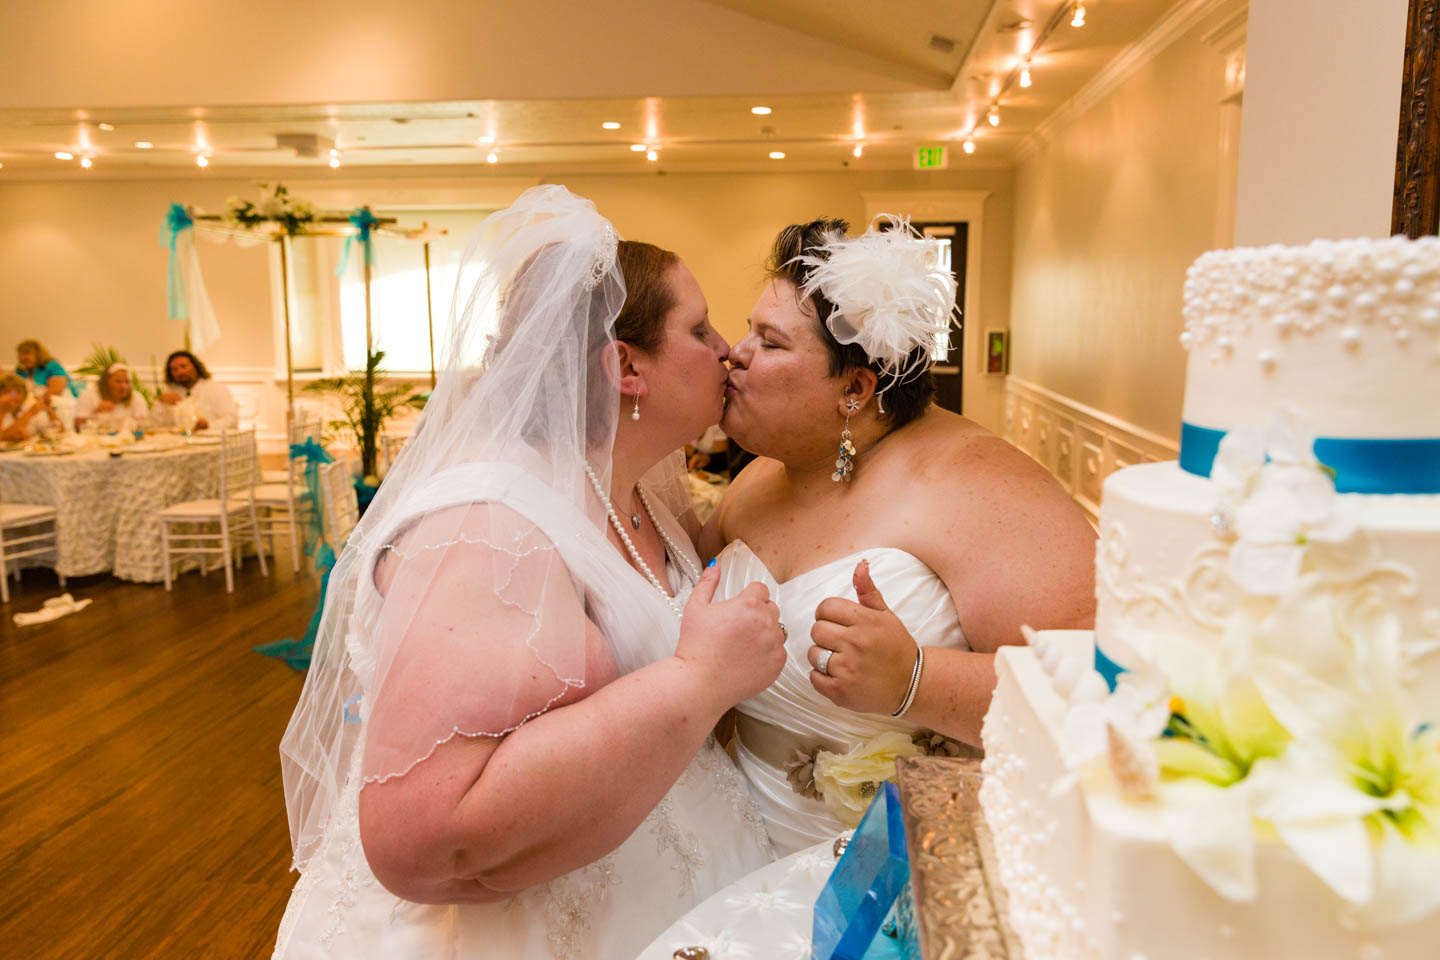 The kiss after cutting the wedding cake